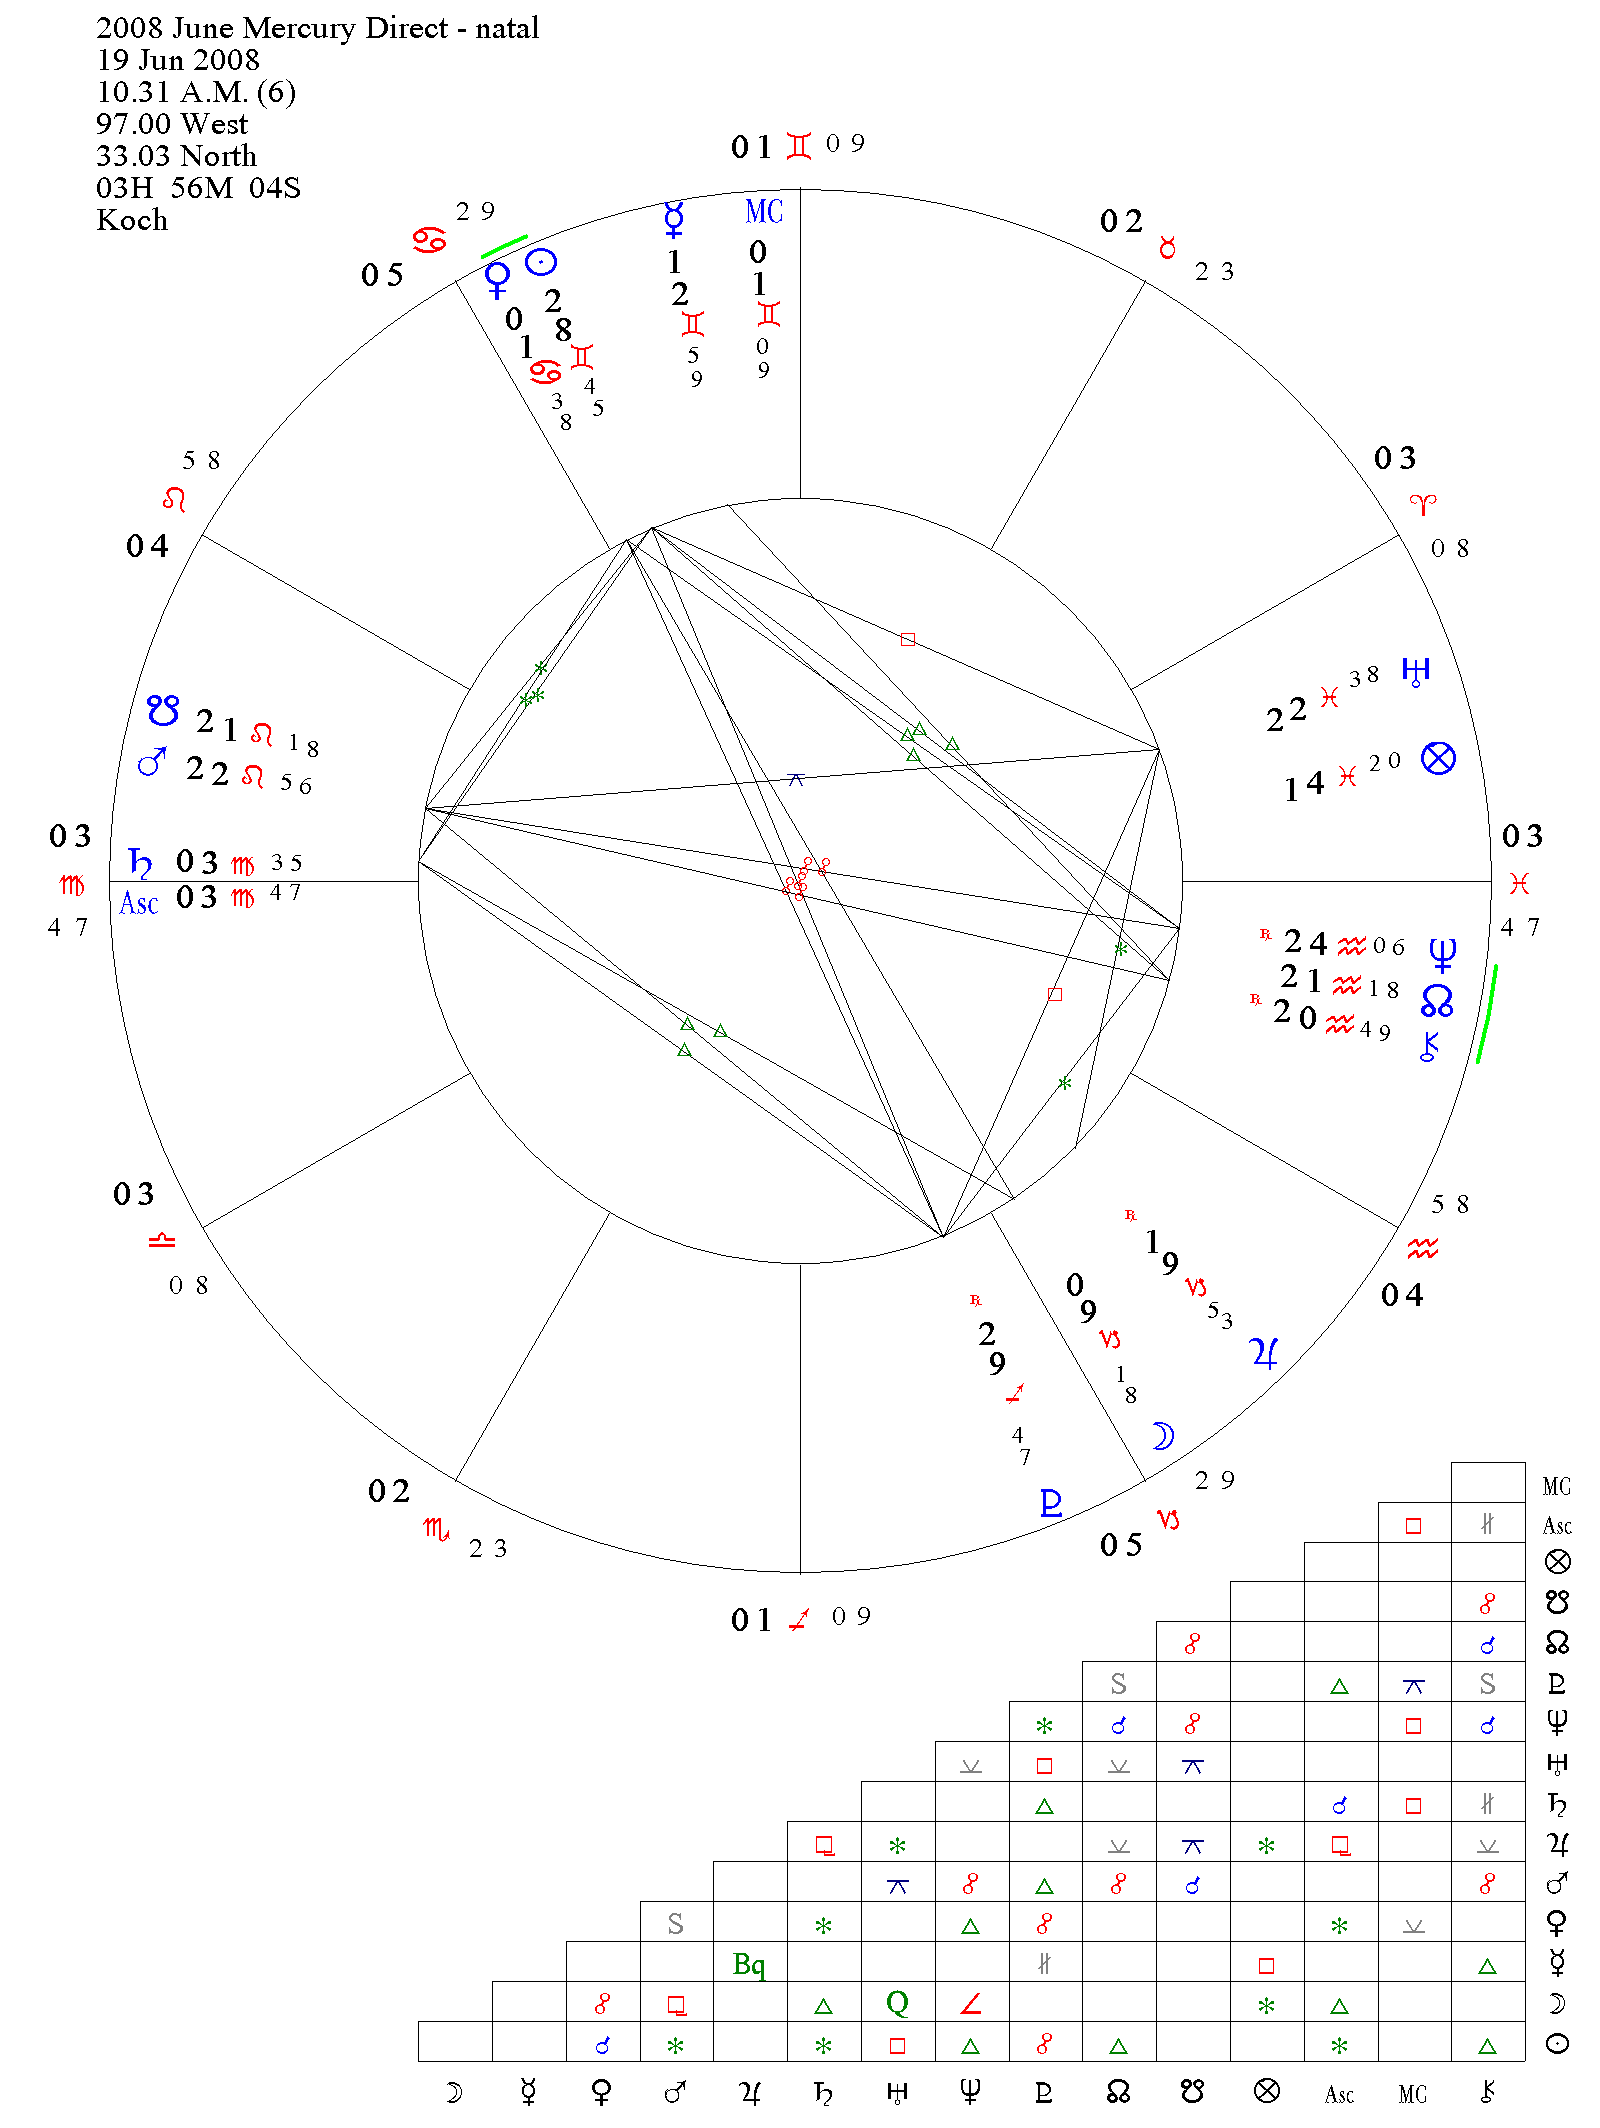 Astrological Chart of Mercury Direct Station, June 2008